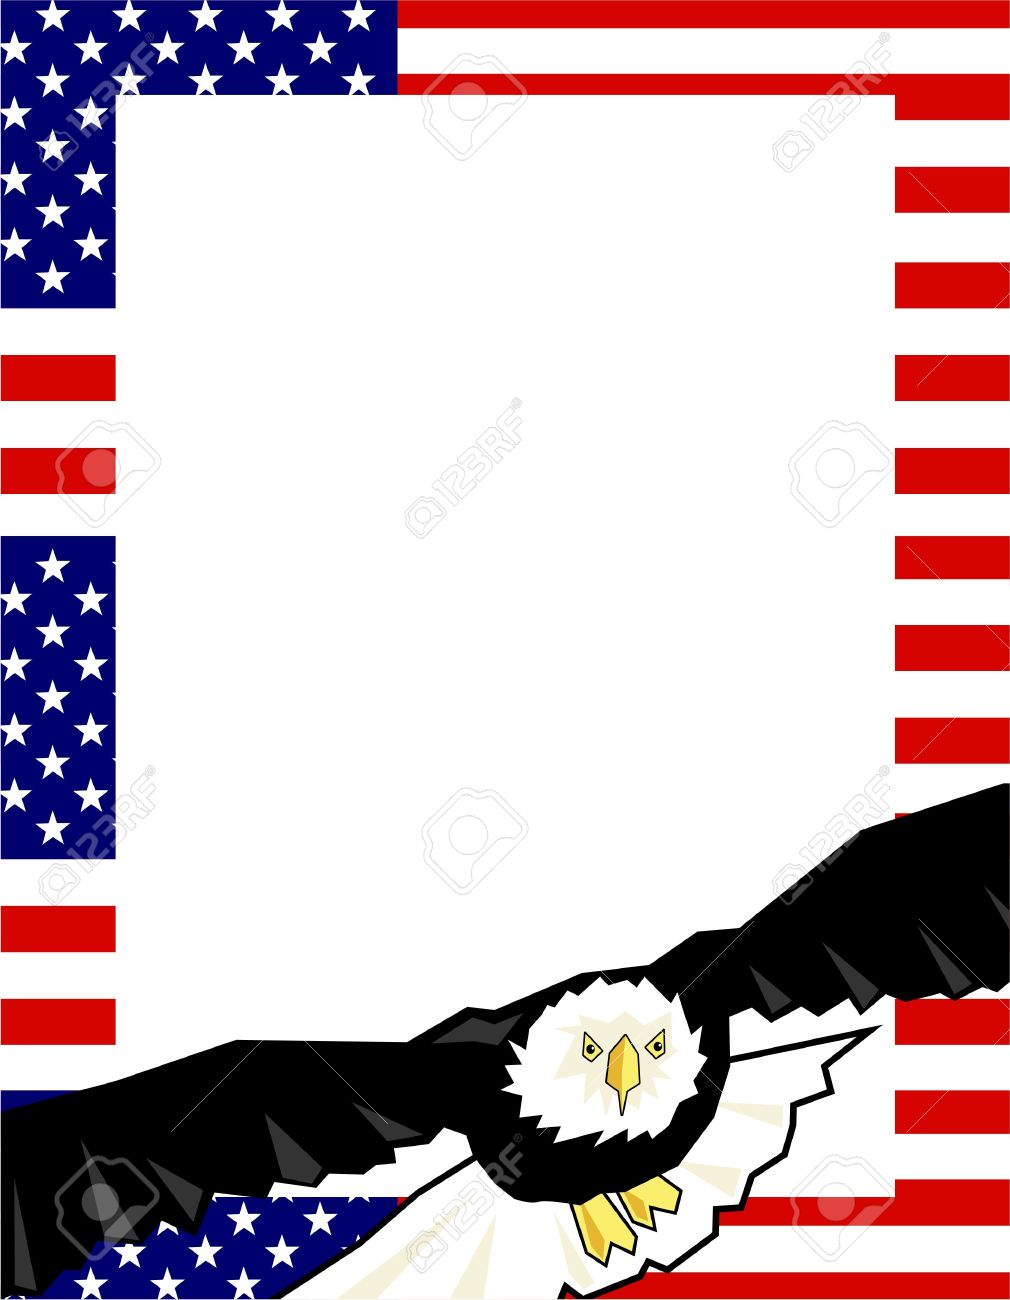 American flag border with bald eagle Stock Photo - 242044